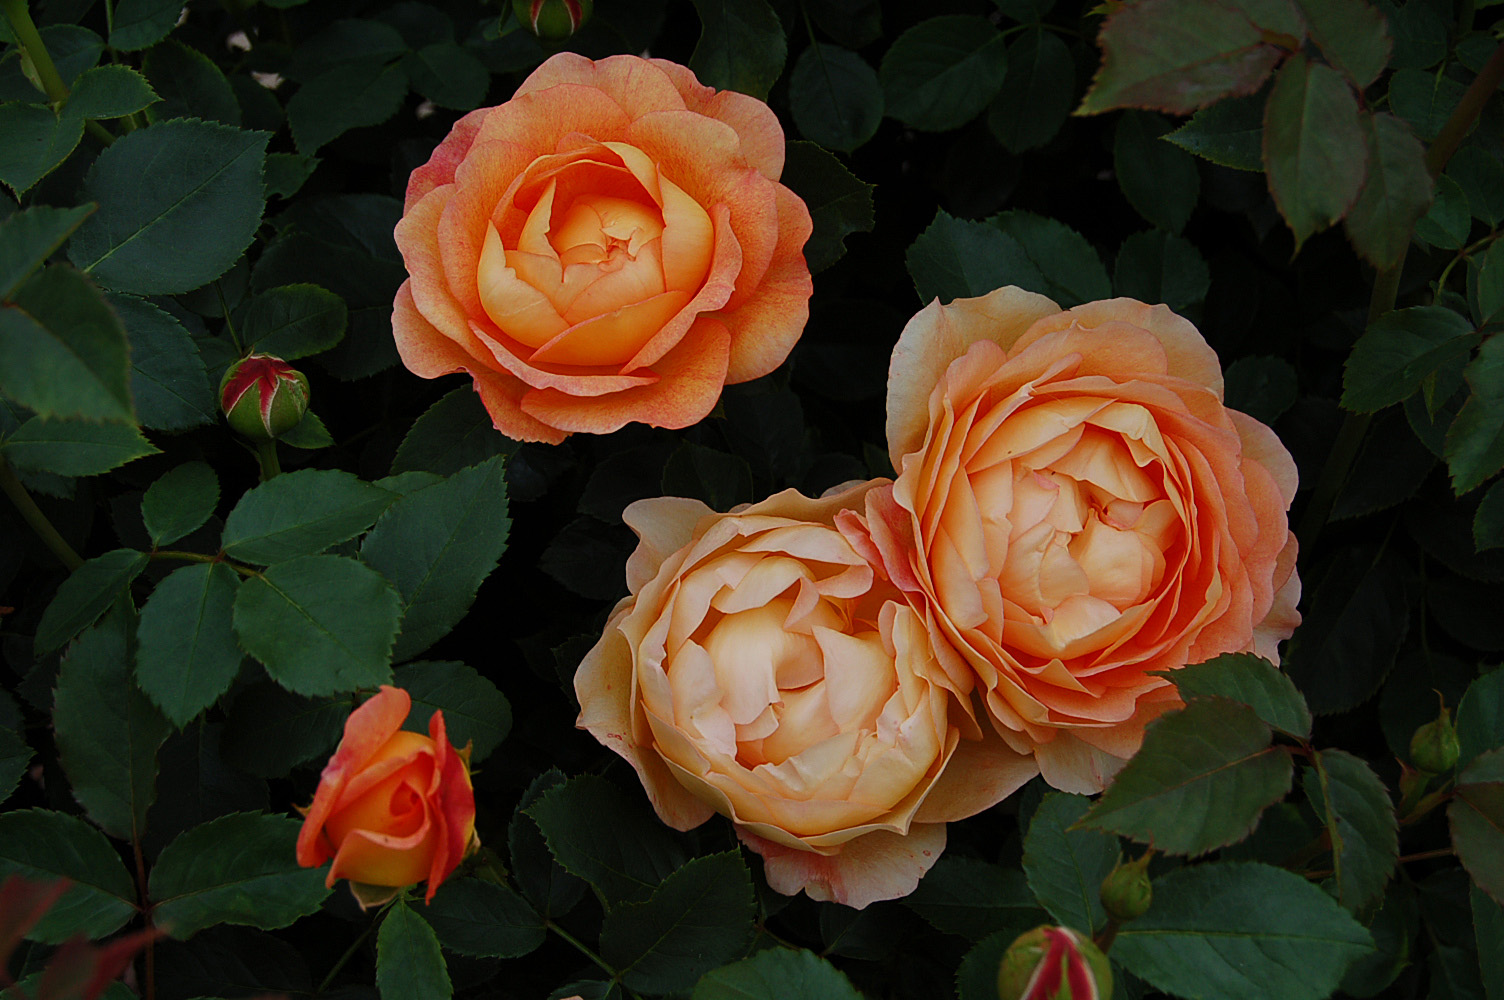 lady of shalott rose - photo #16